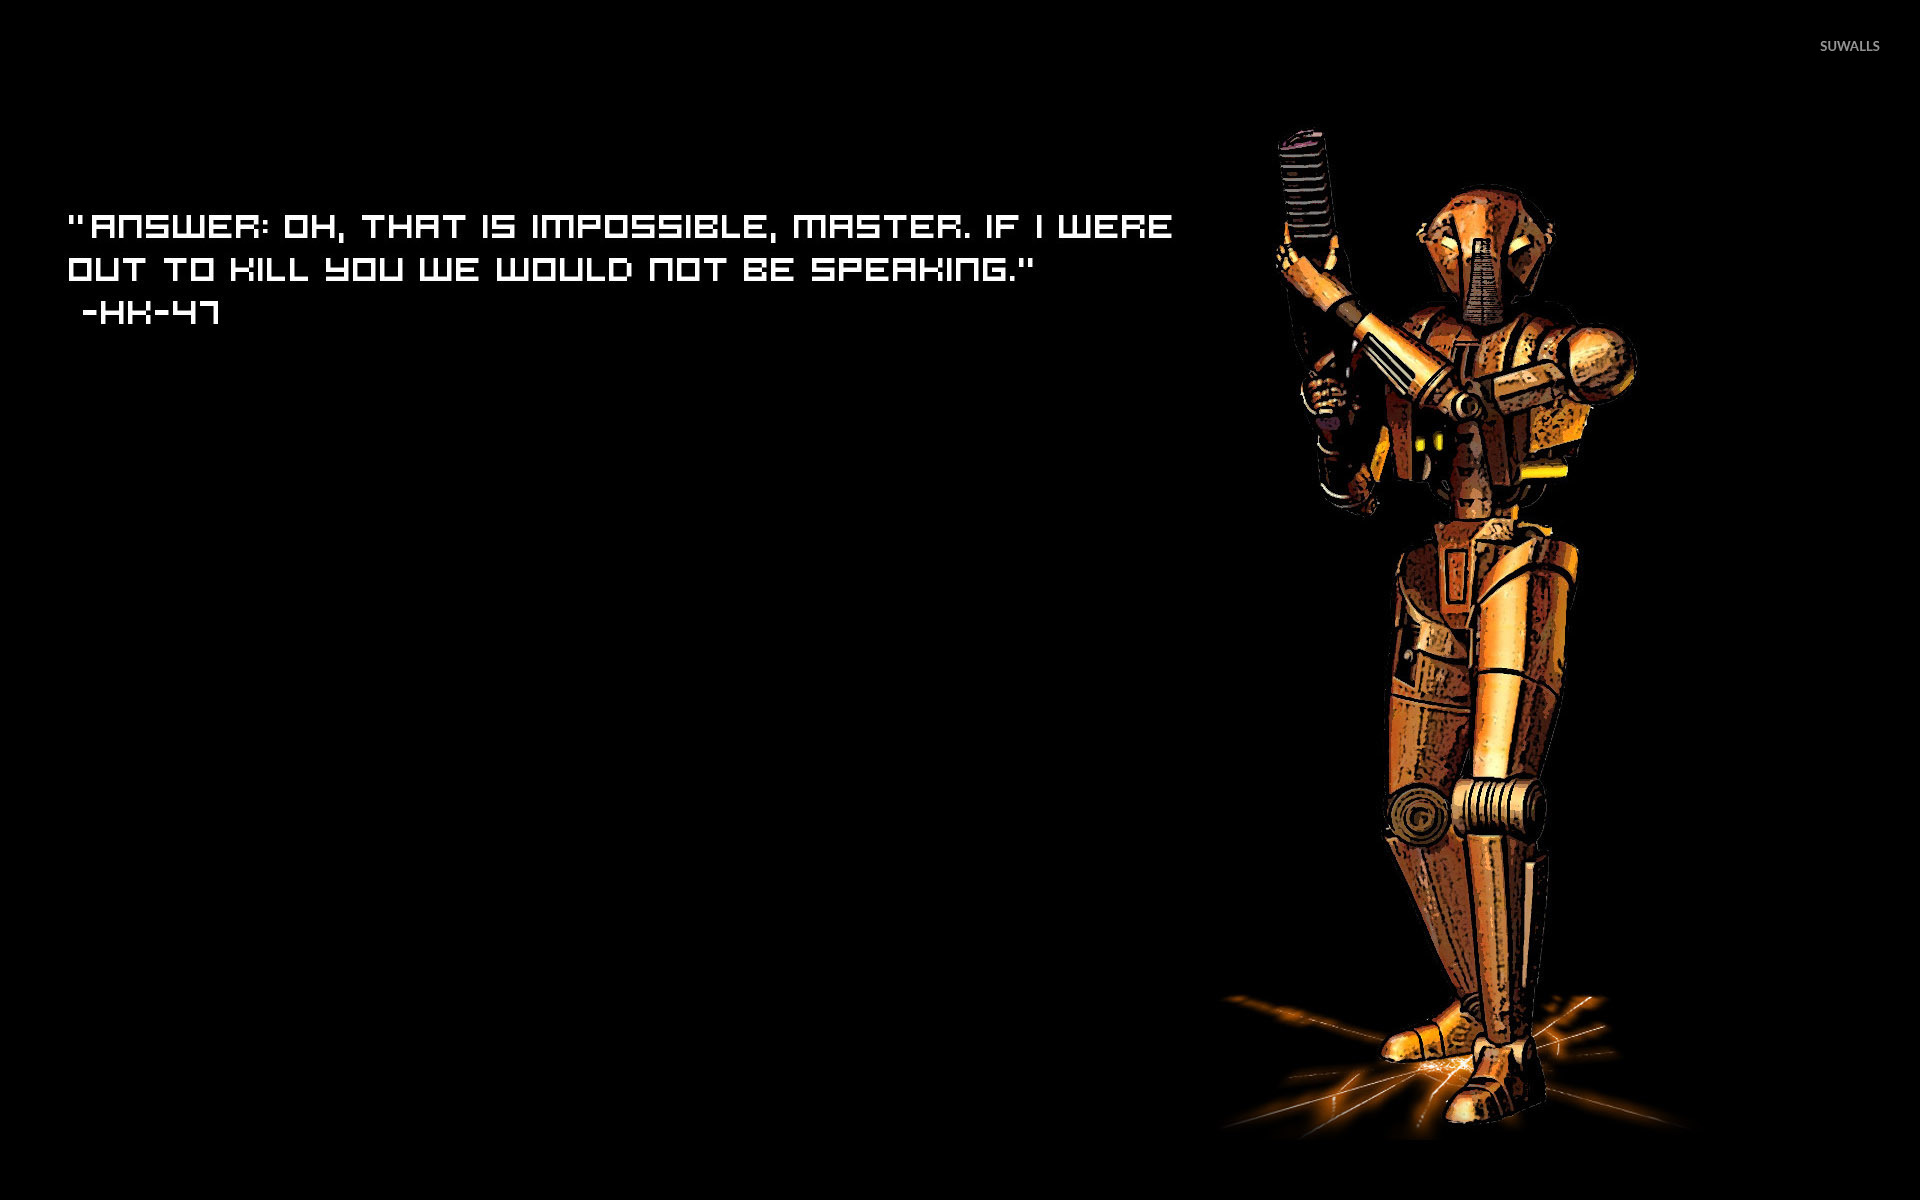 Star Wars Quotes Wallpaper